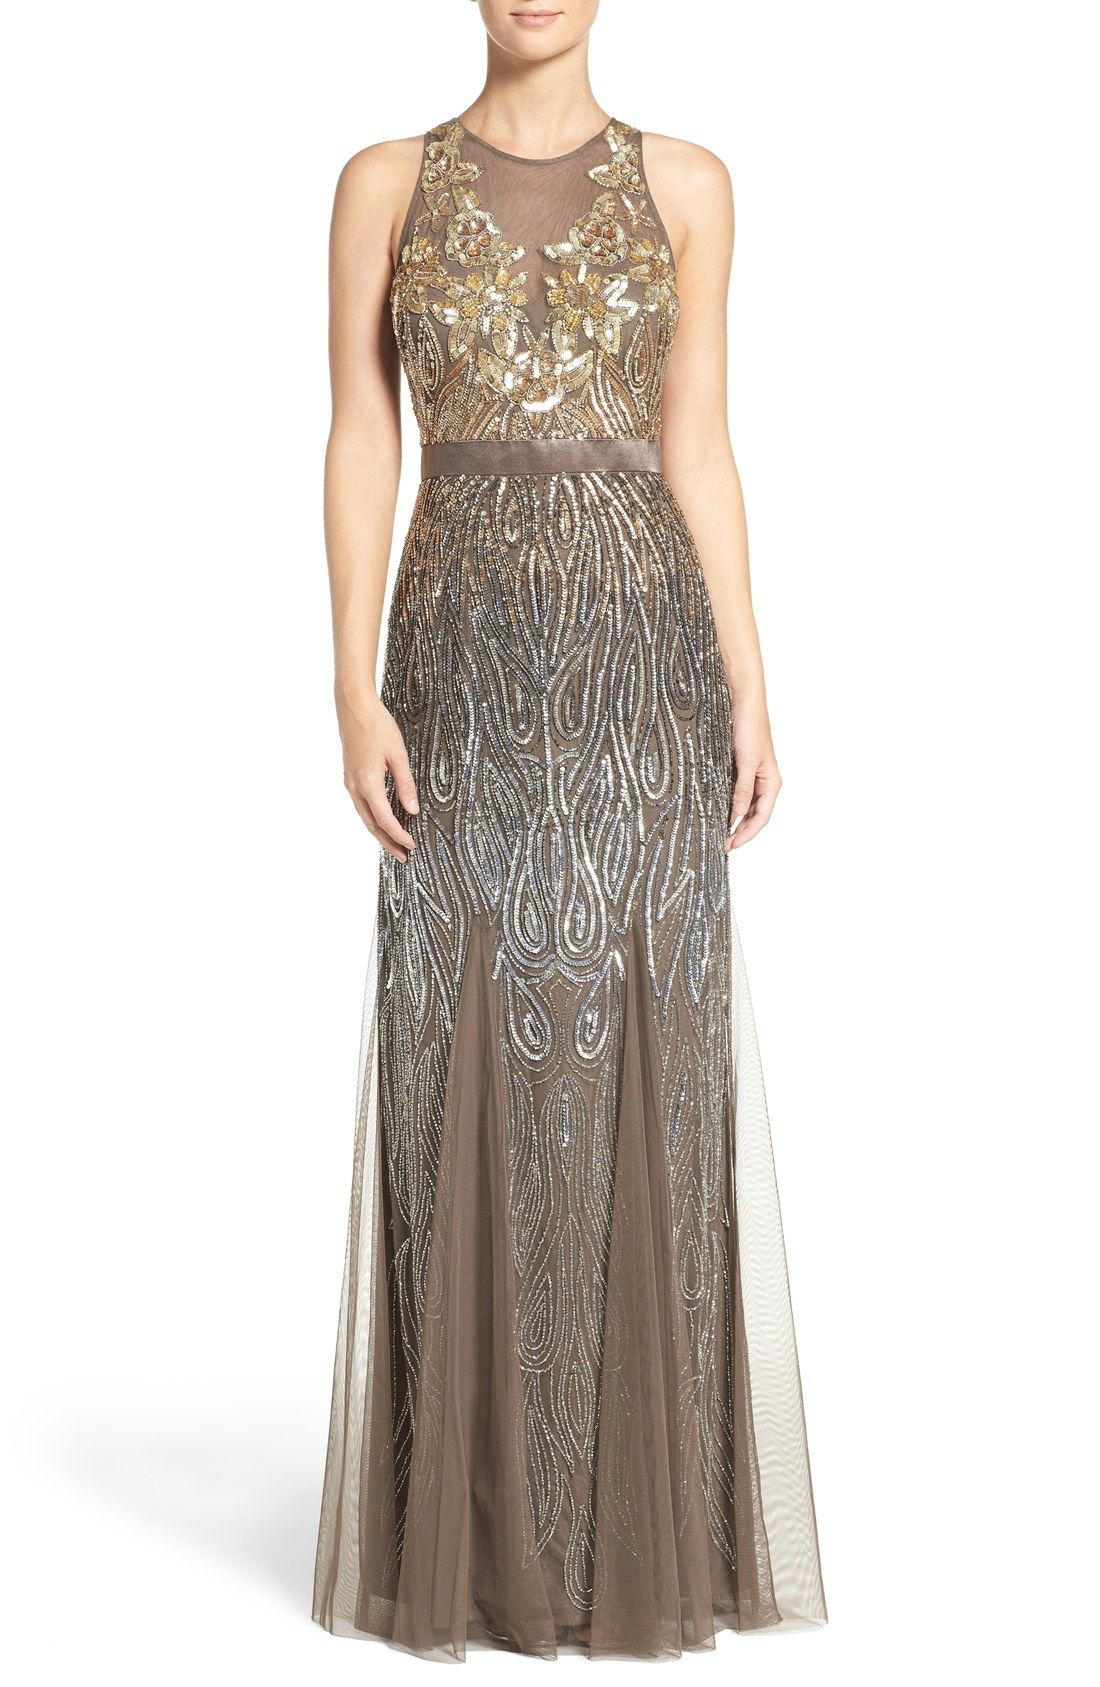 Adrianna Papell Embellished Mesh Mermaid Gown available at #Nordstrom